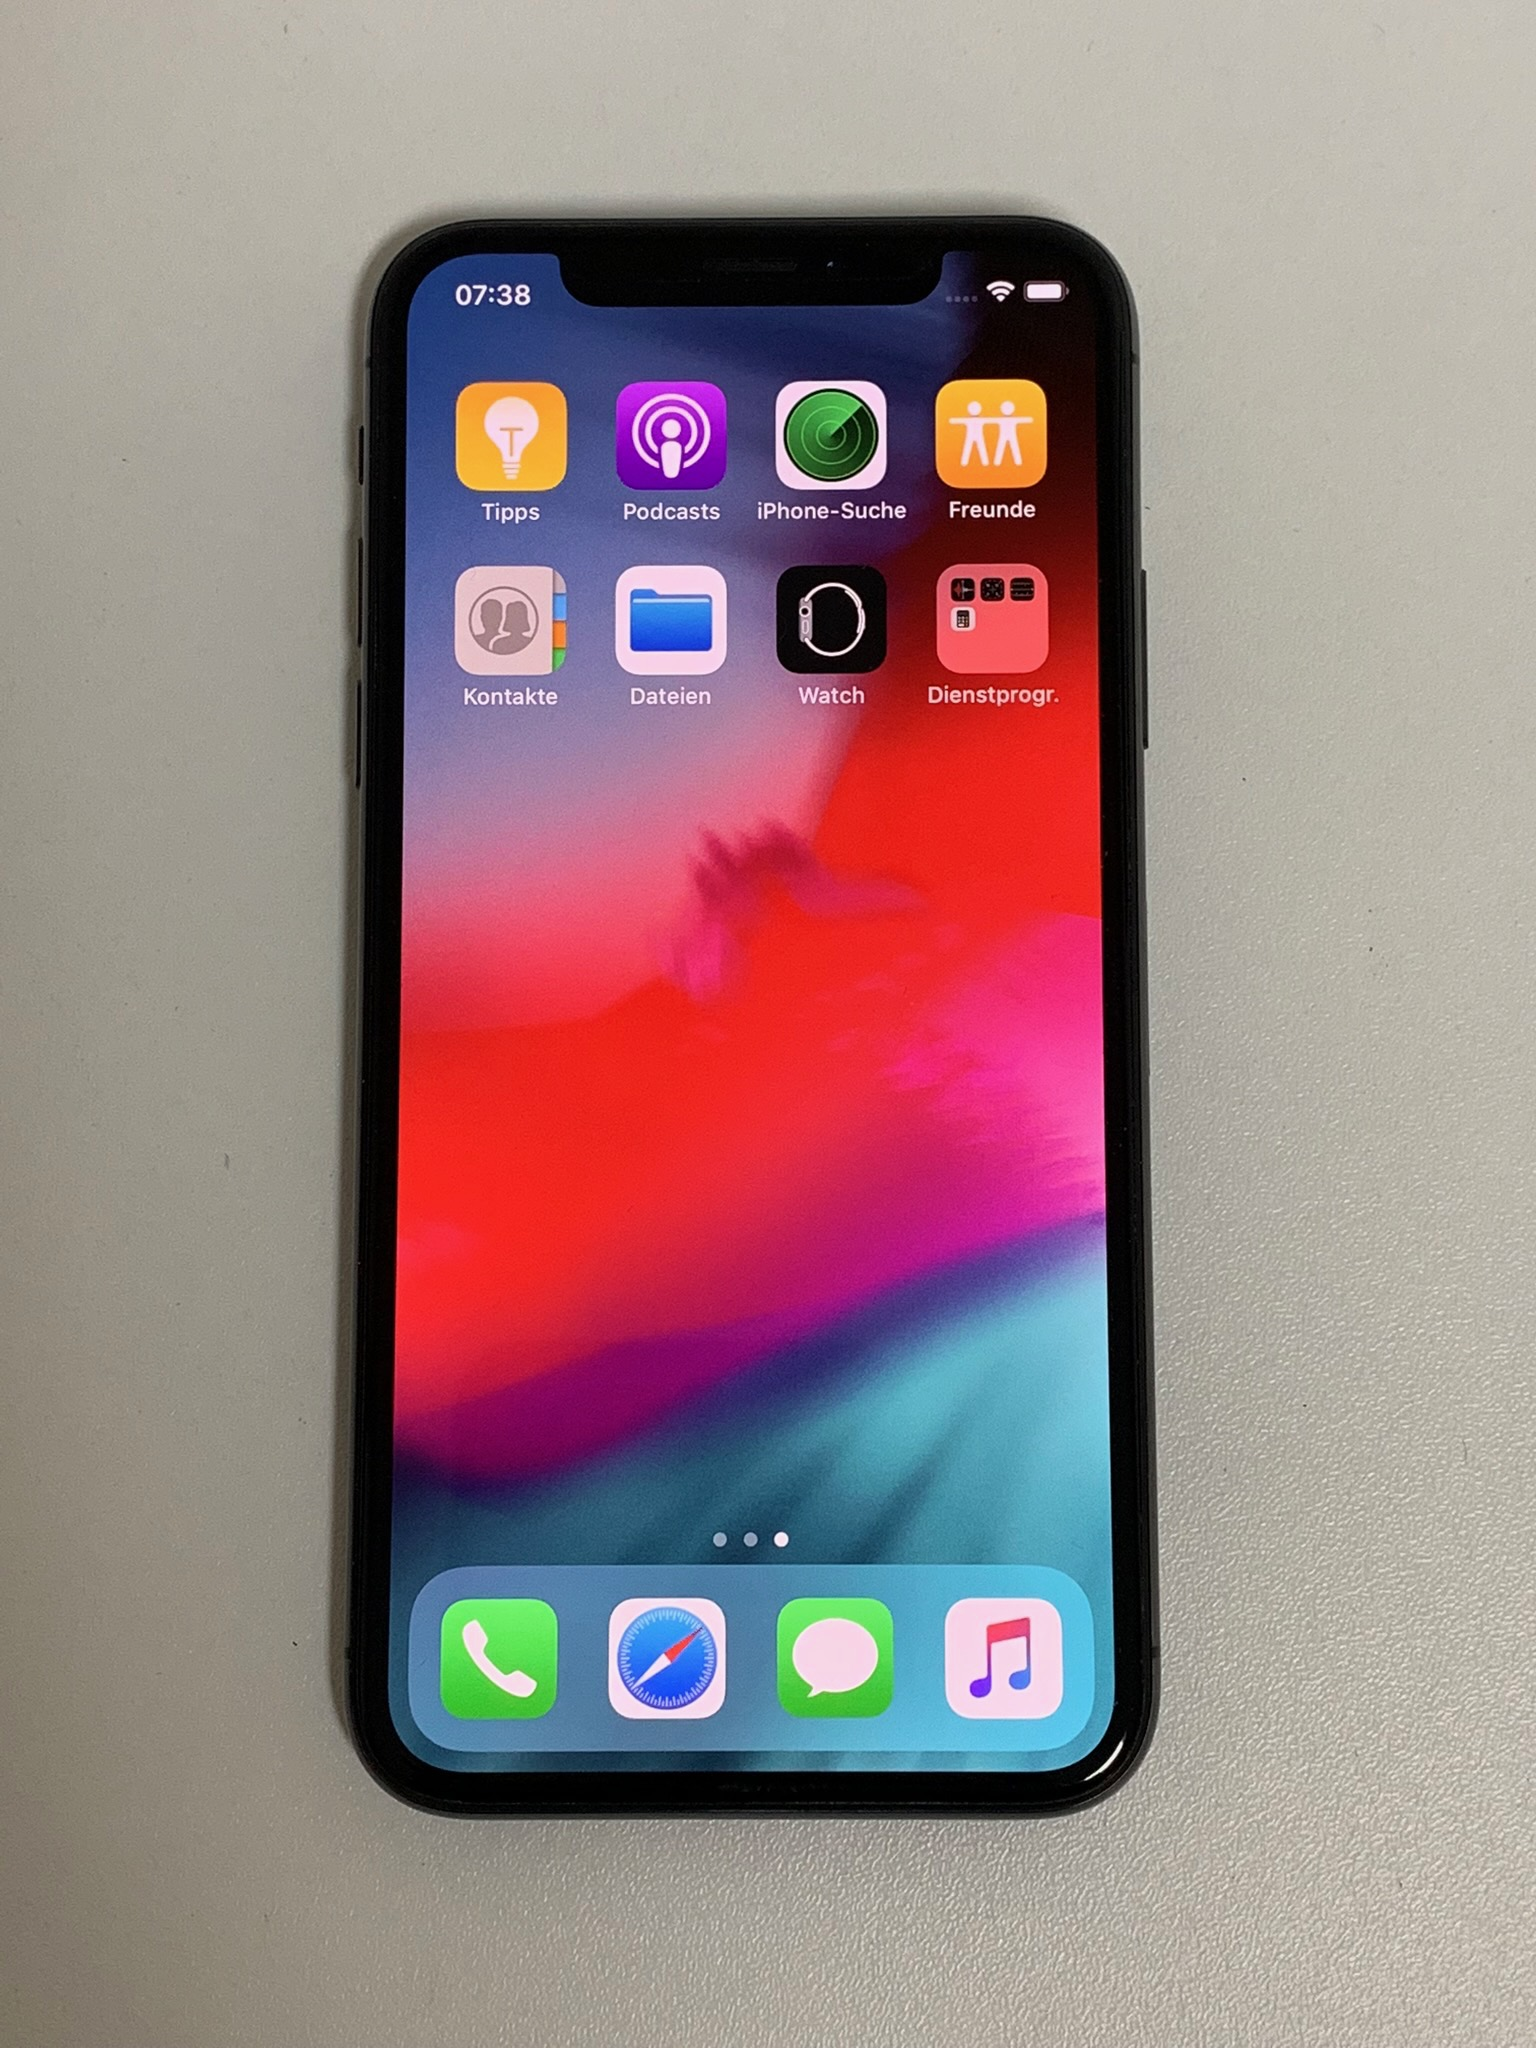 iPhone X 256GB, 256 GB, Space Grau, Bild 1